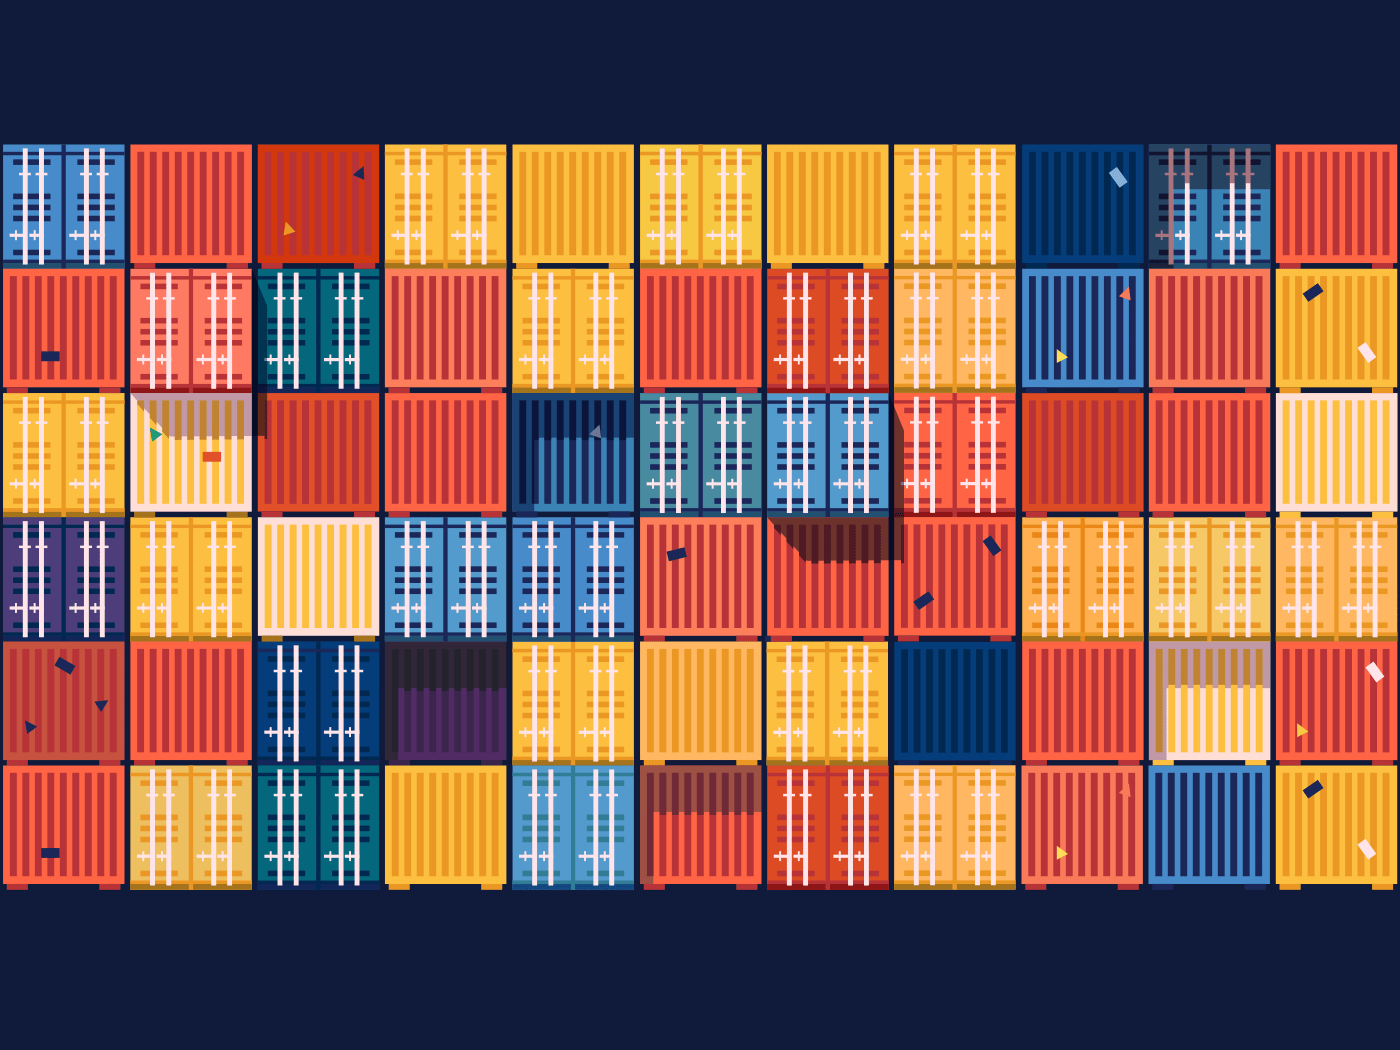 Wall of containers abstract background